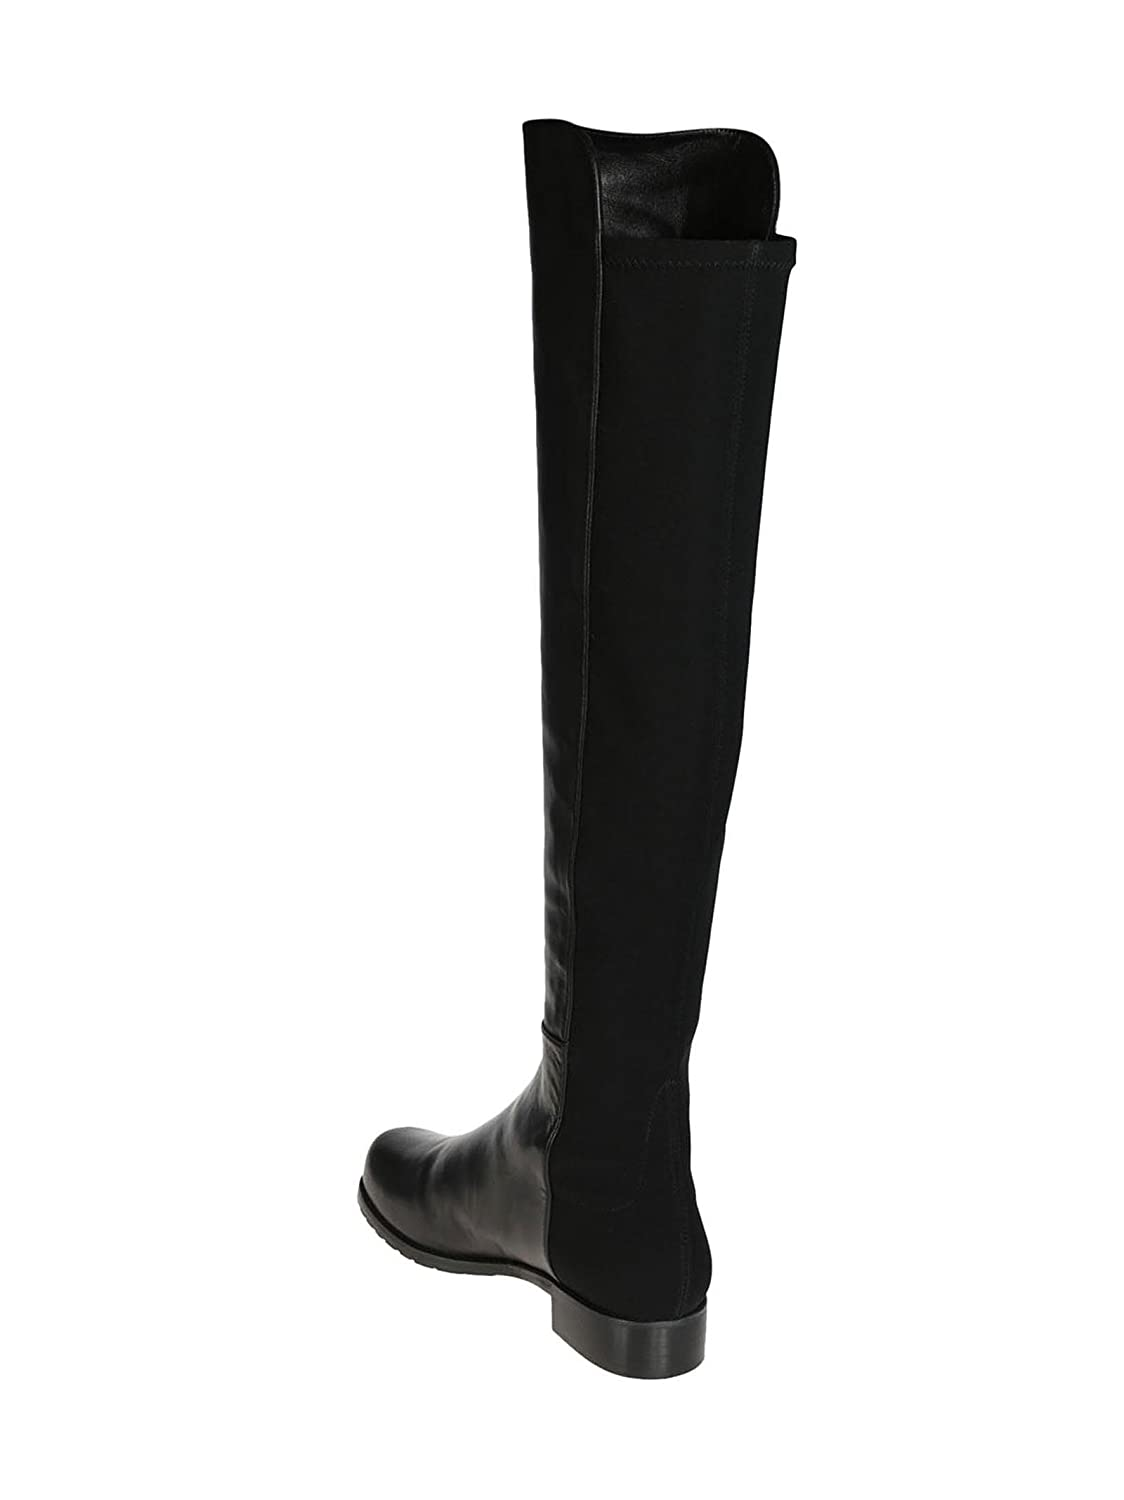 Stuart Weitzman Women's US|Black 5050 Over-the-Knee Boot B005AGDYOS 4 2A(N) US|Black Women's Nappa Leather 55c2e5